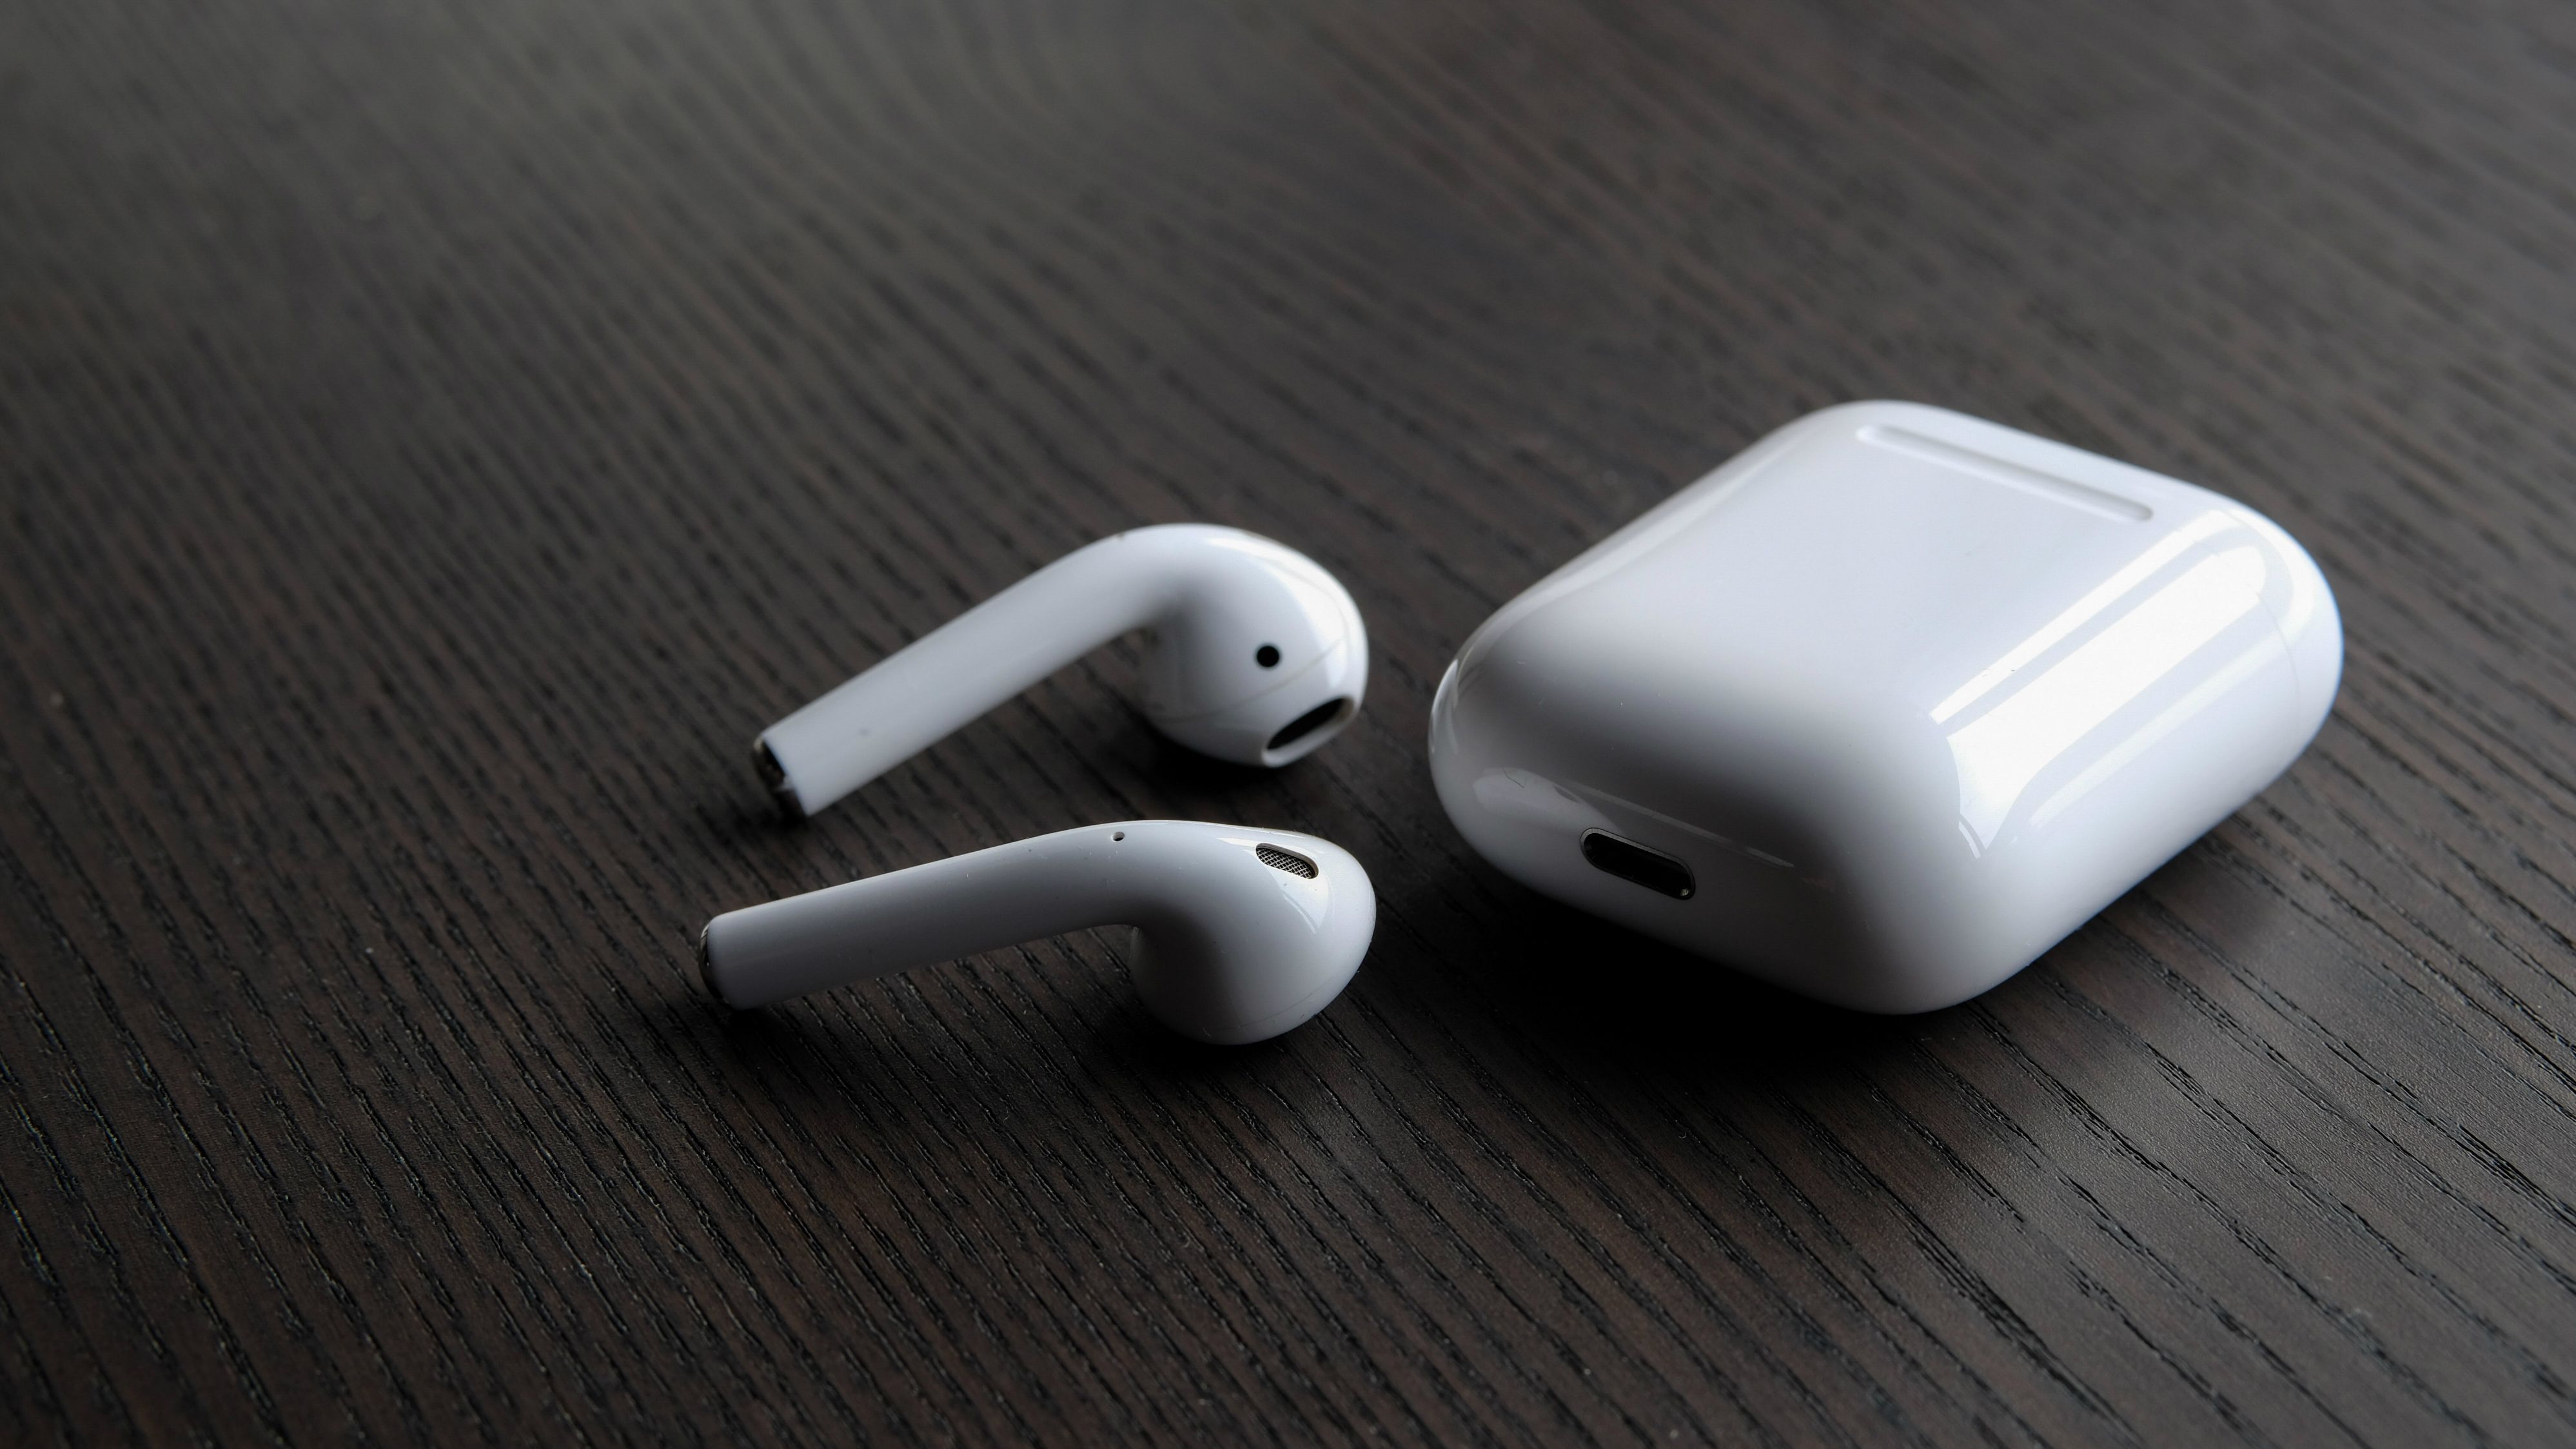 The Cheapest Airpods Sales And Deals In April 2021 Earbuds Airpods Pro Active Noise Cancellation